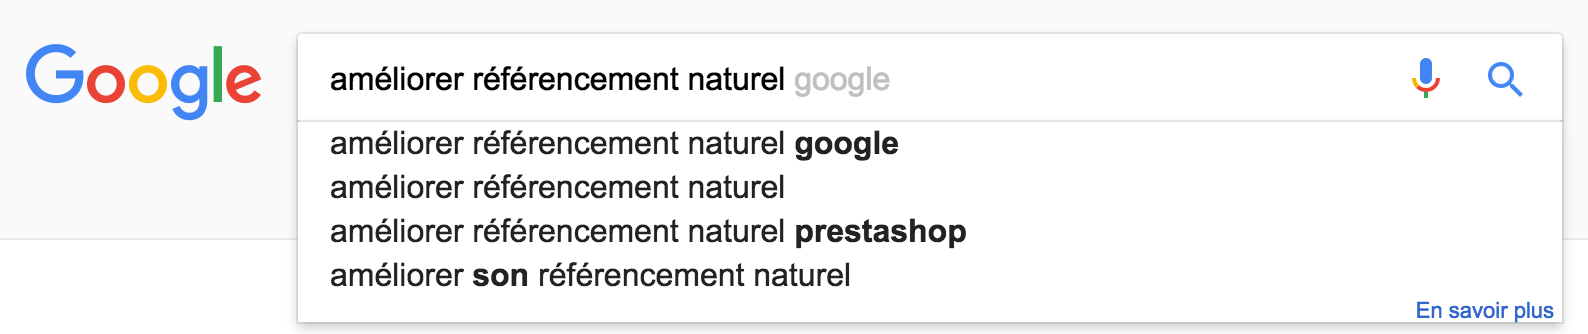 Suggestions Google